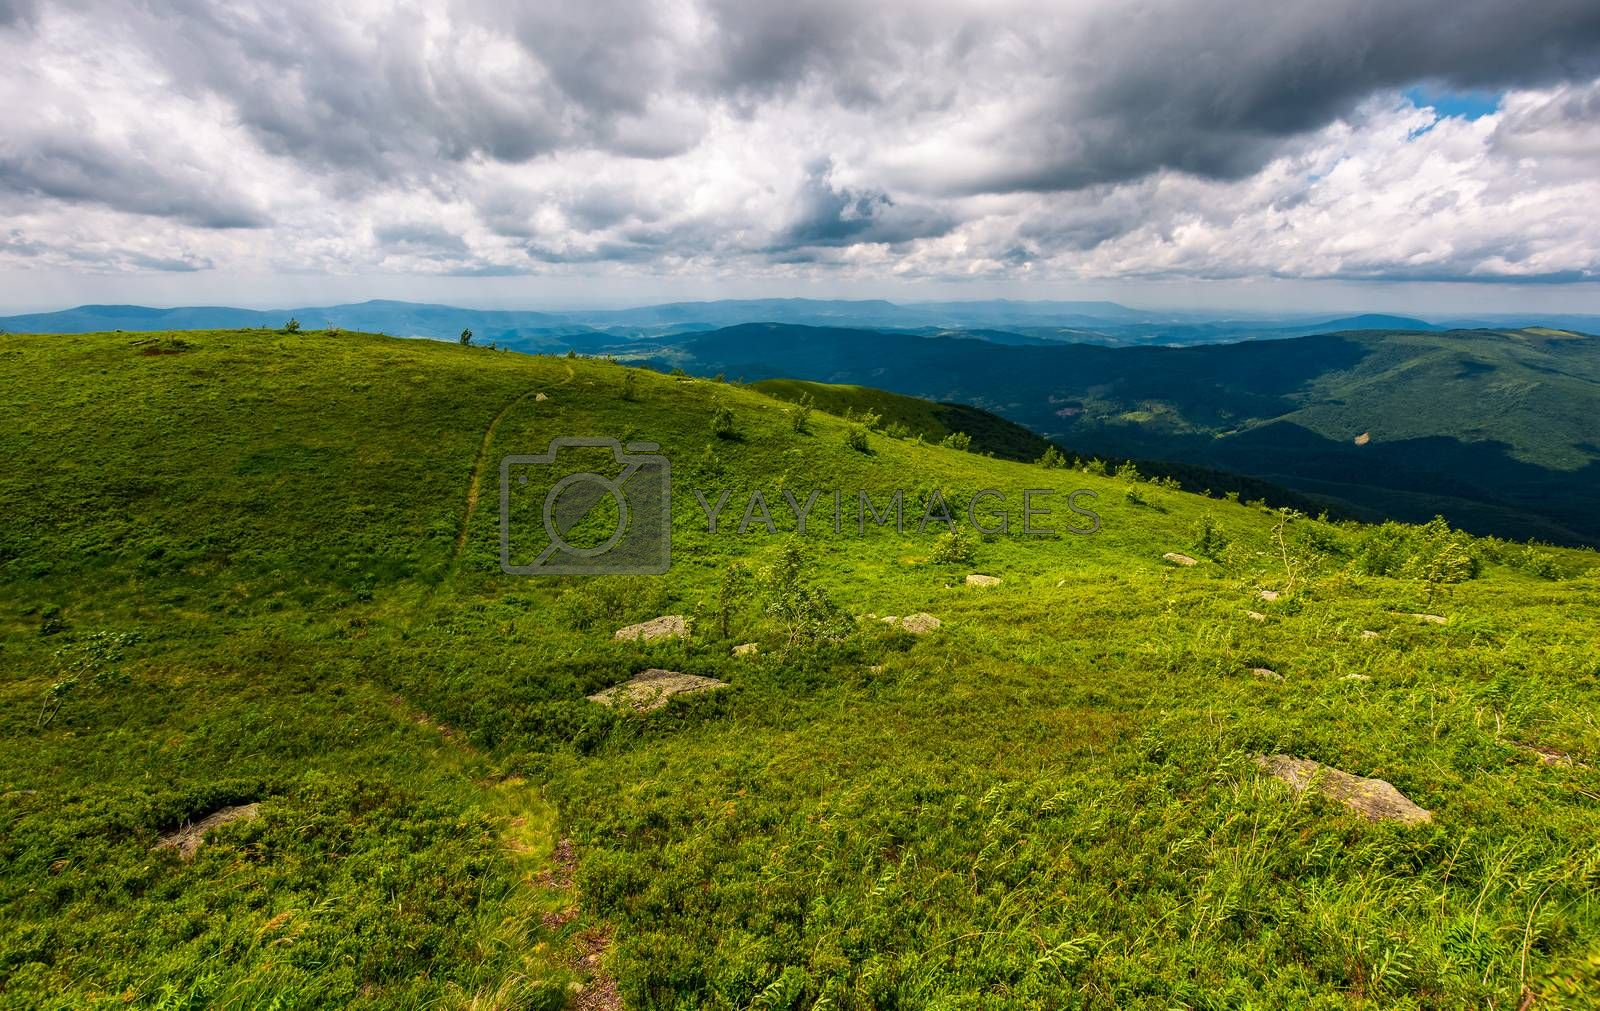 grassy hills on a cloudy day in Carpathians by Pellinni